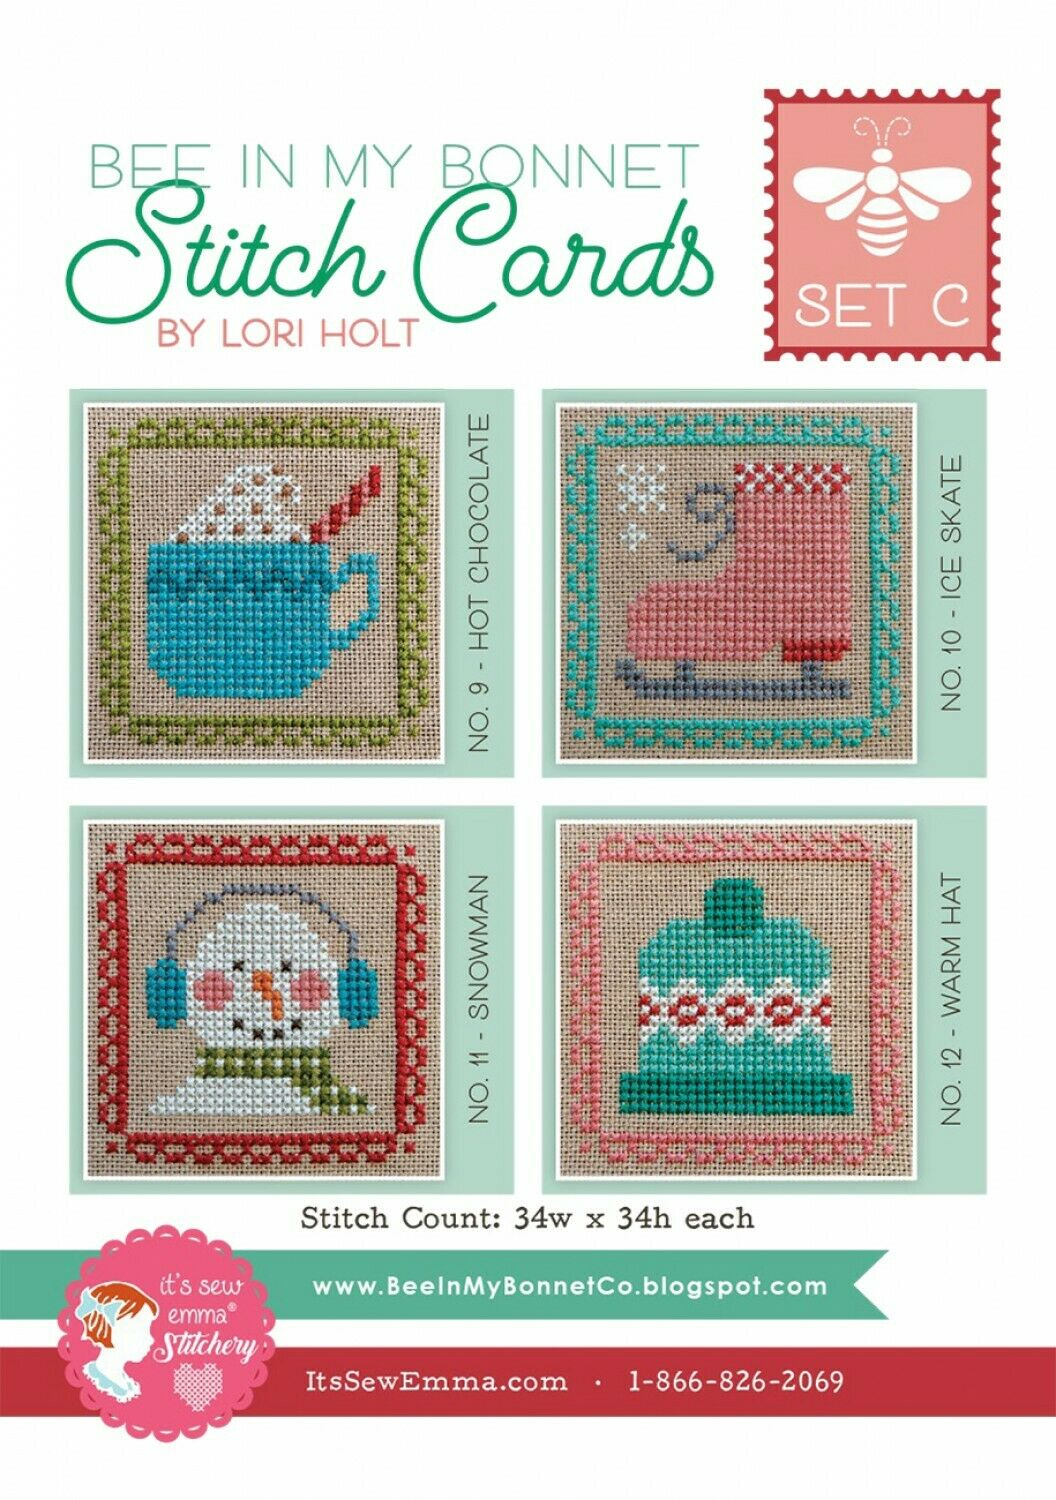 STITCH CARDS SET C by Lori Holt of Bee in my Bonnet